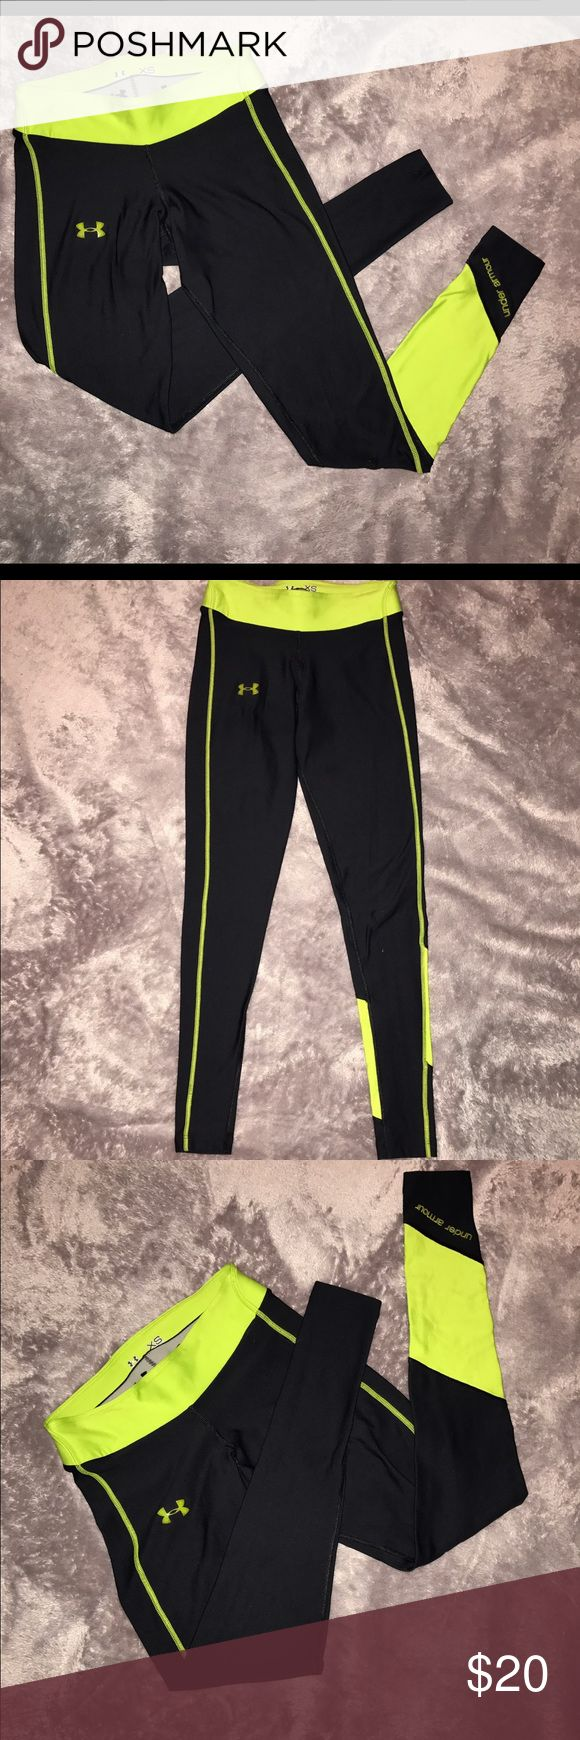 Under Armor Compression Leggings Worn a handful of times. It's way too small for me now unfortunately. Good condition 👍🏽 Under Armour Pants Track Pants & Joggers